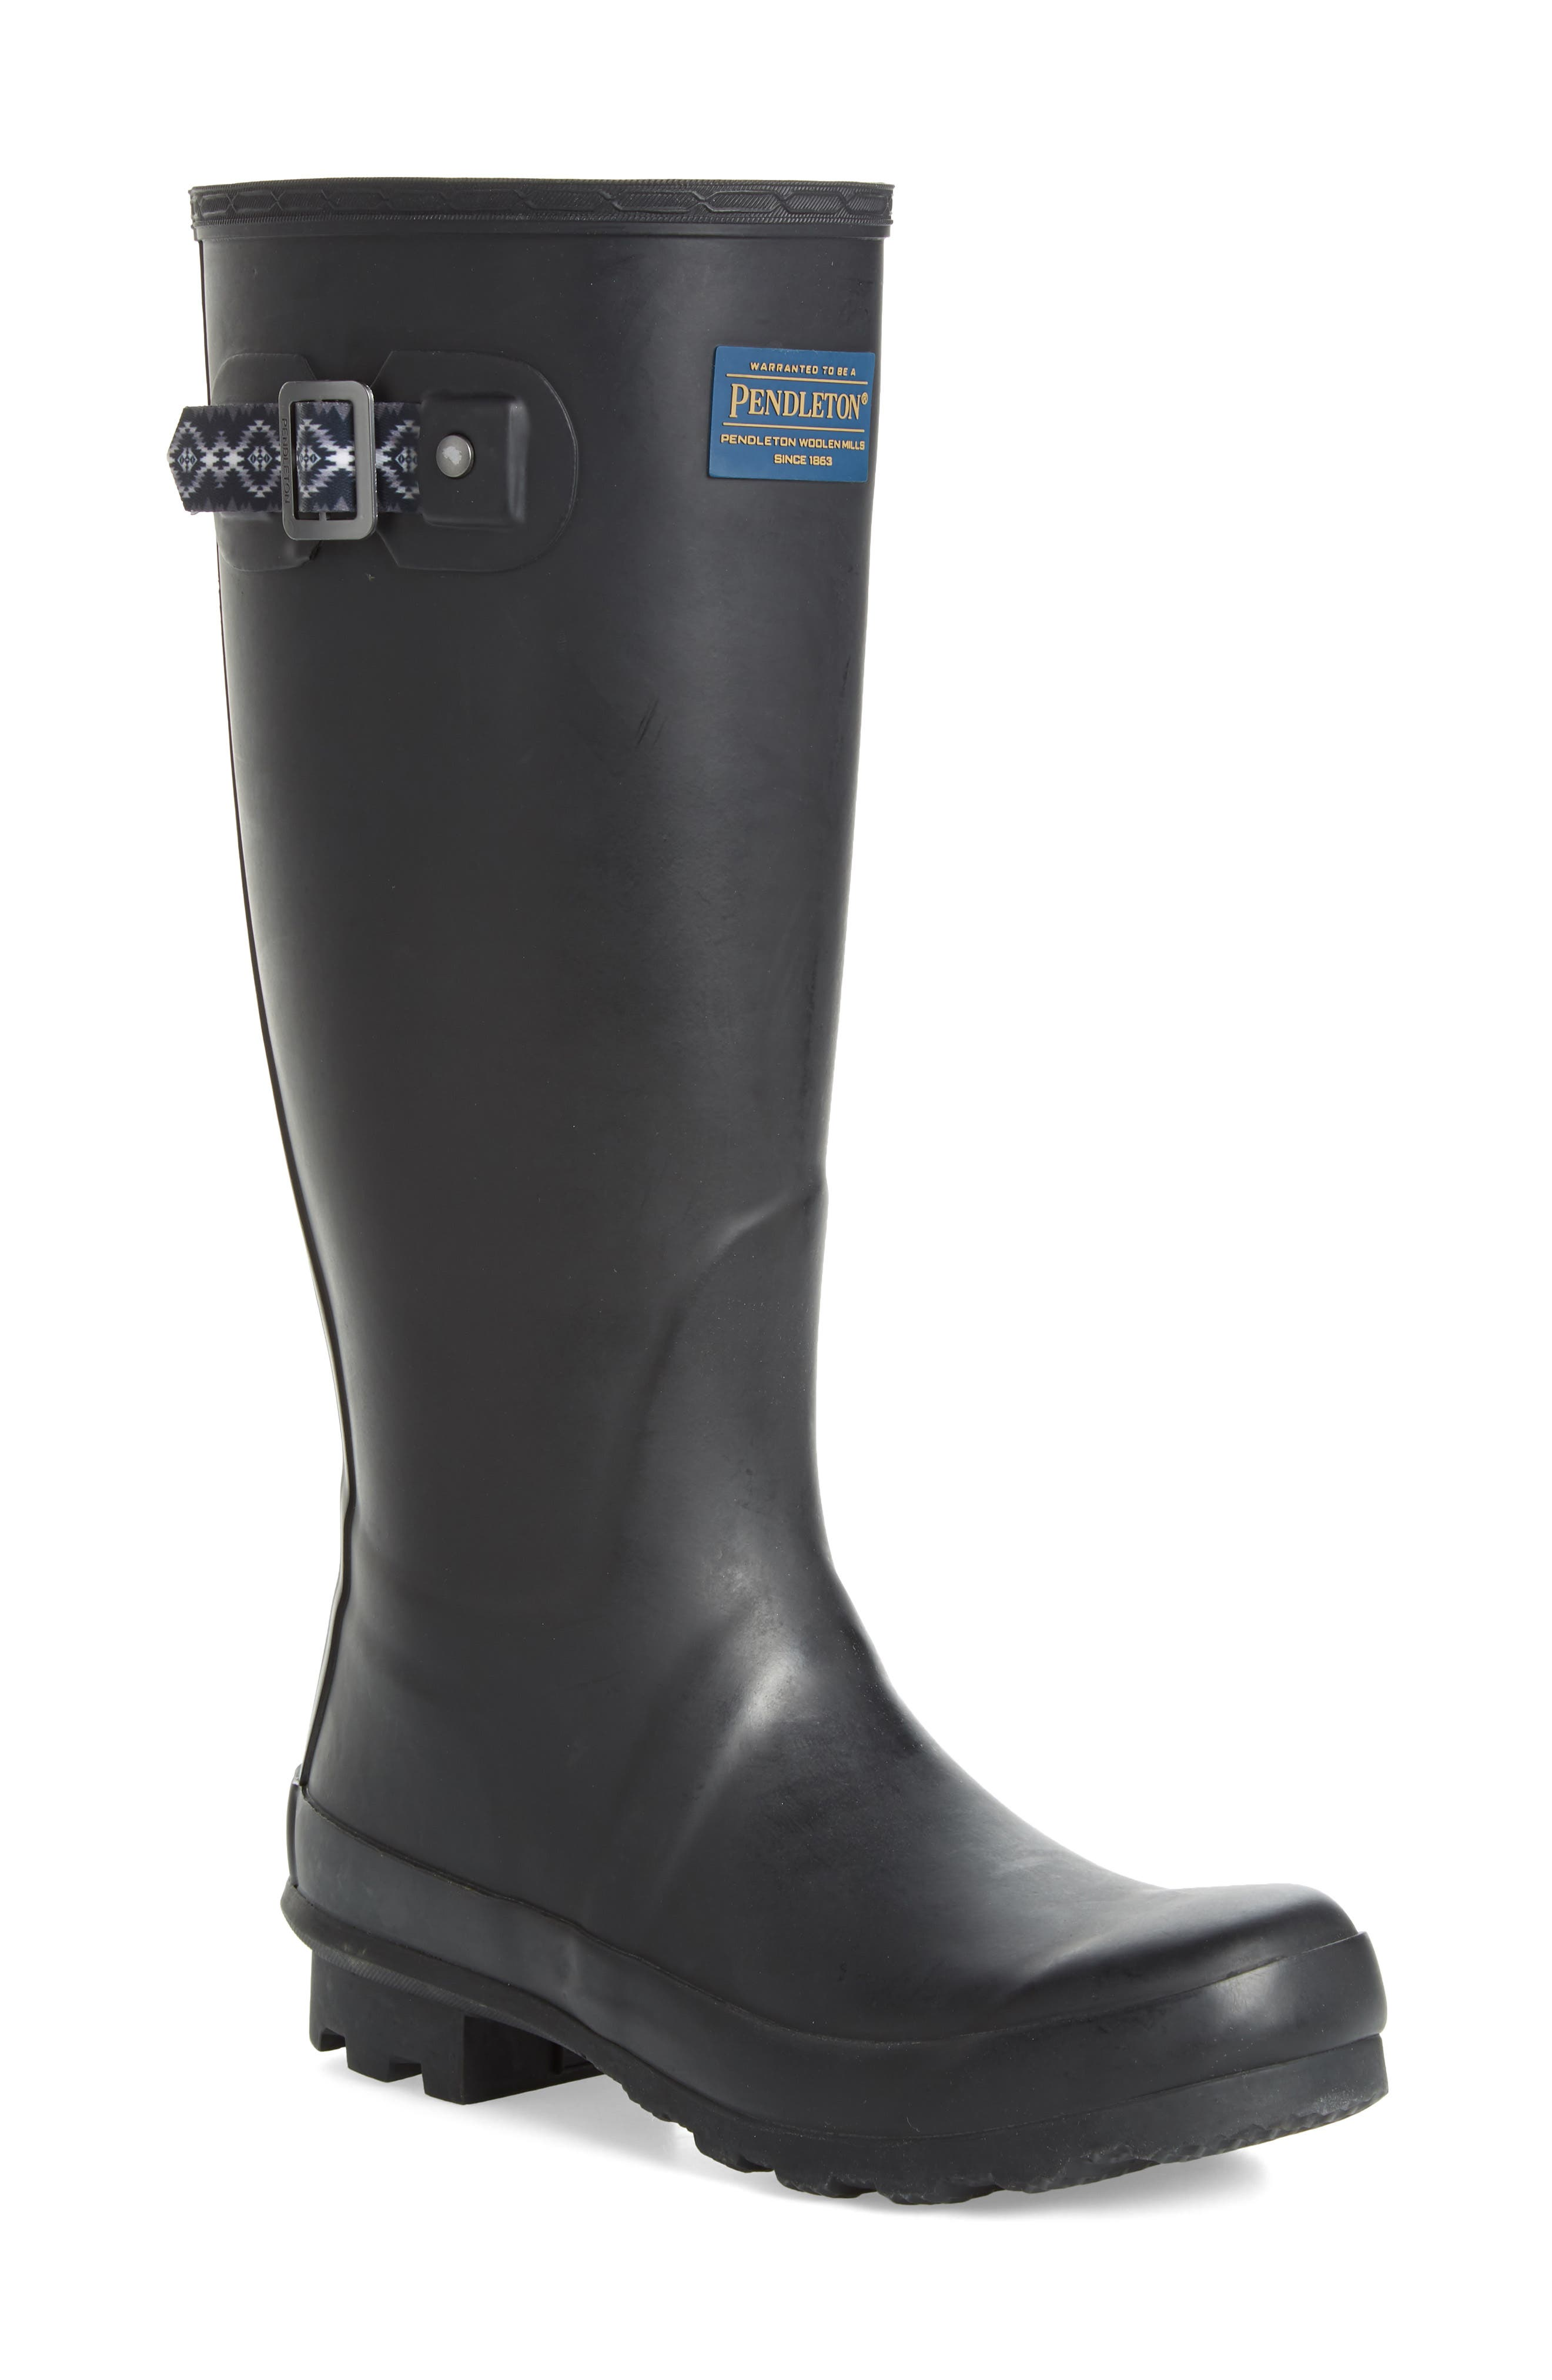 Image of PENDLETON Classic Solid Waterproof Tall Boot